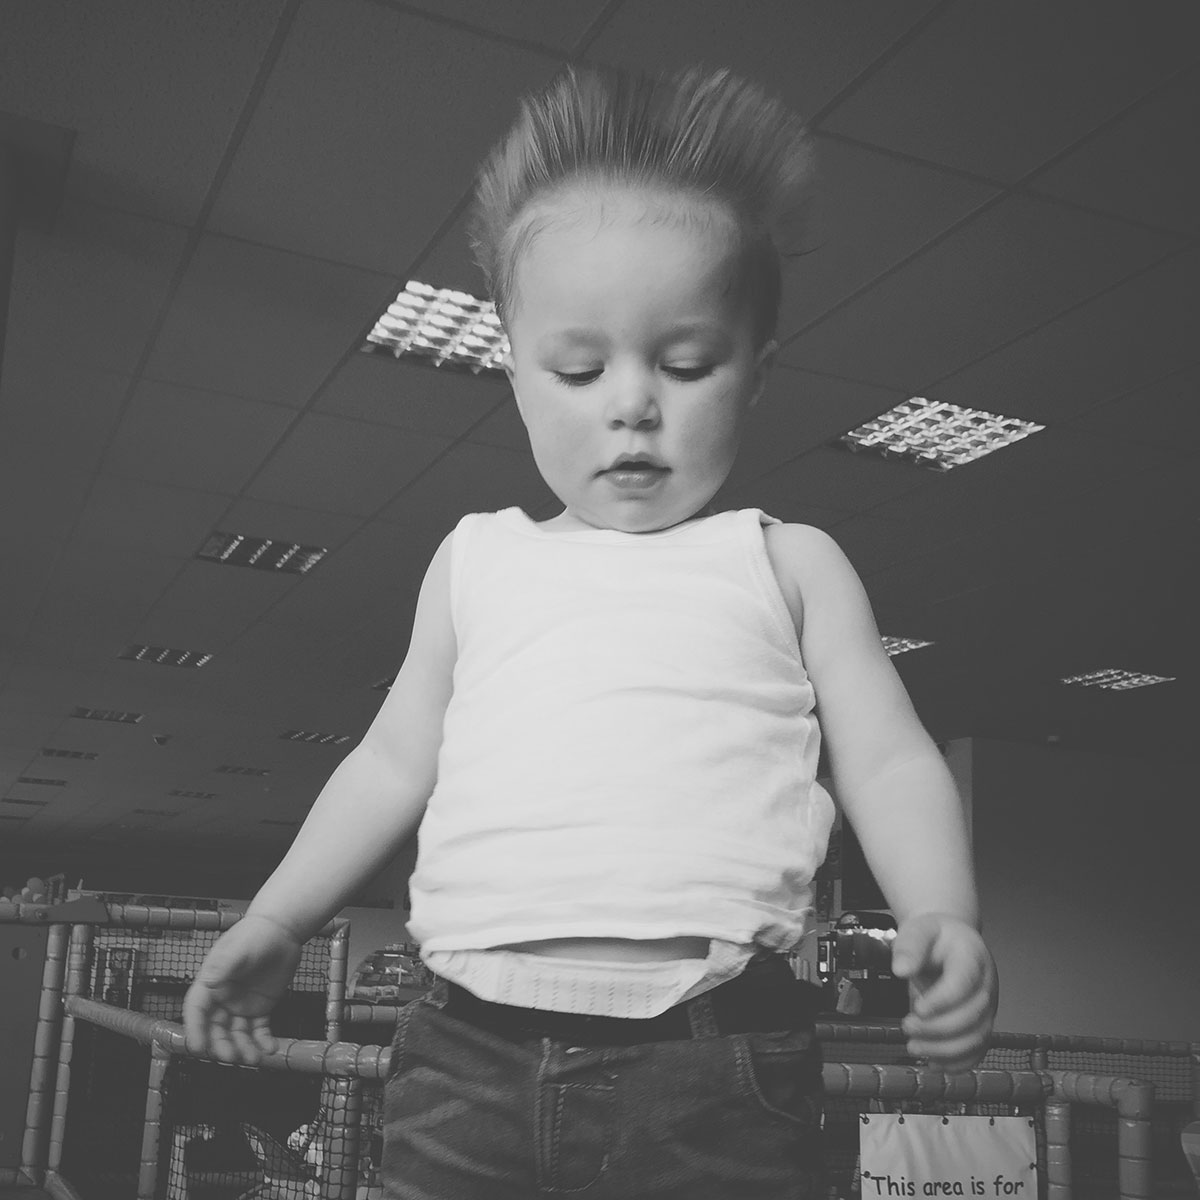 Our month in insta-snaps; May 2016 - Toddler playing at softplay with the wind machine